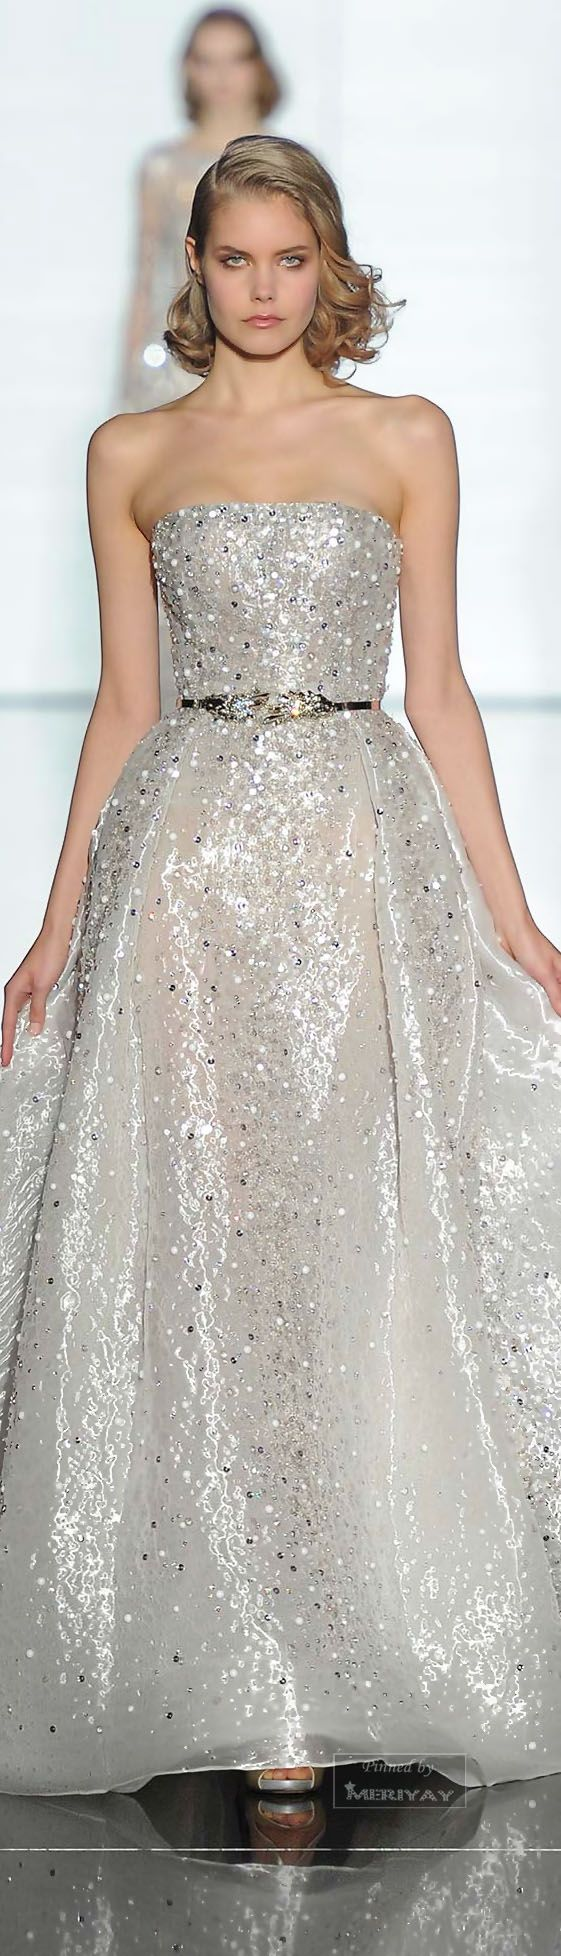 Wow - this is like a fairy tale princess dress! Zuhair Murad.Spring 2015 Couture.